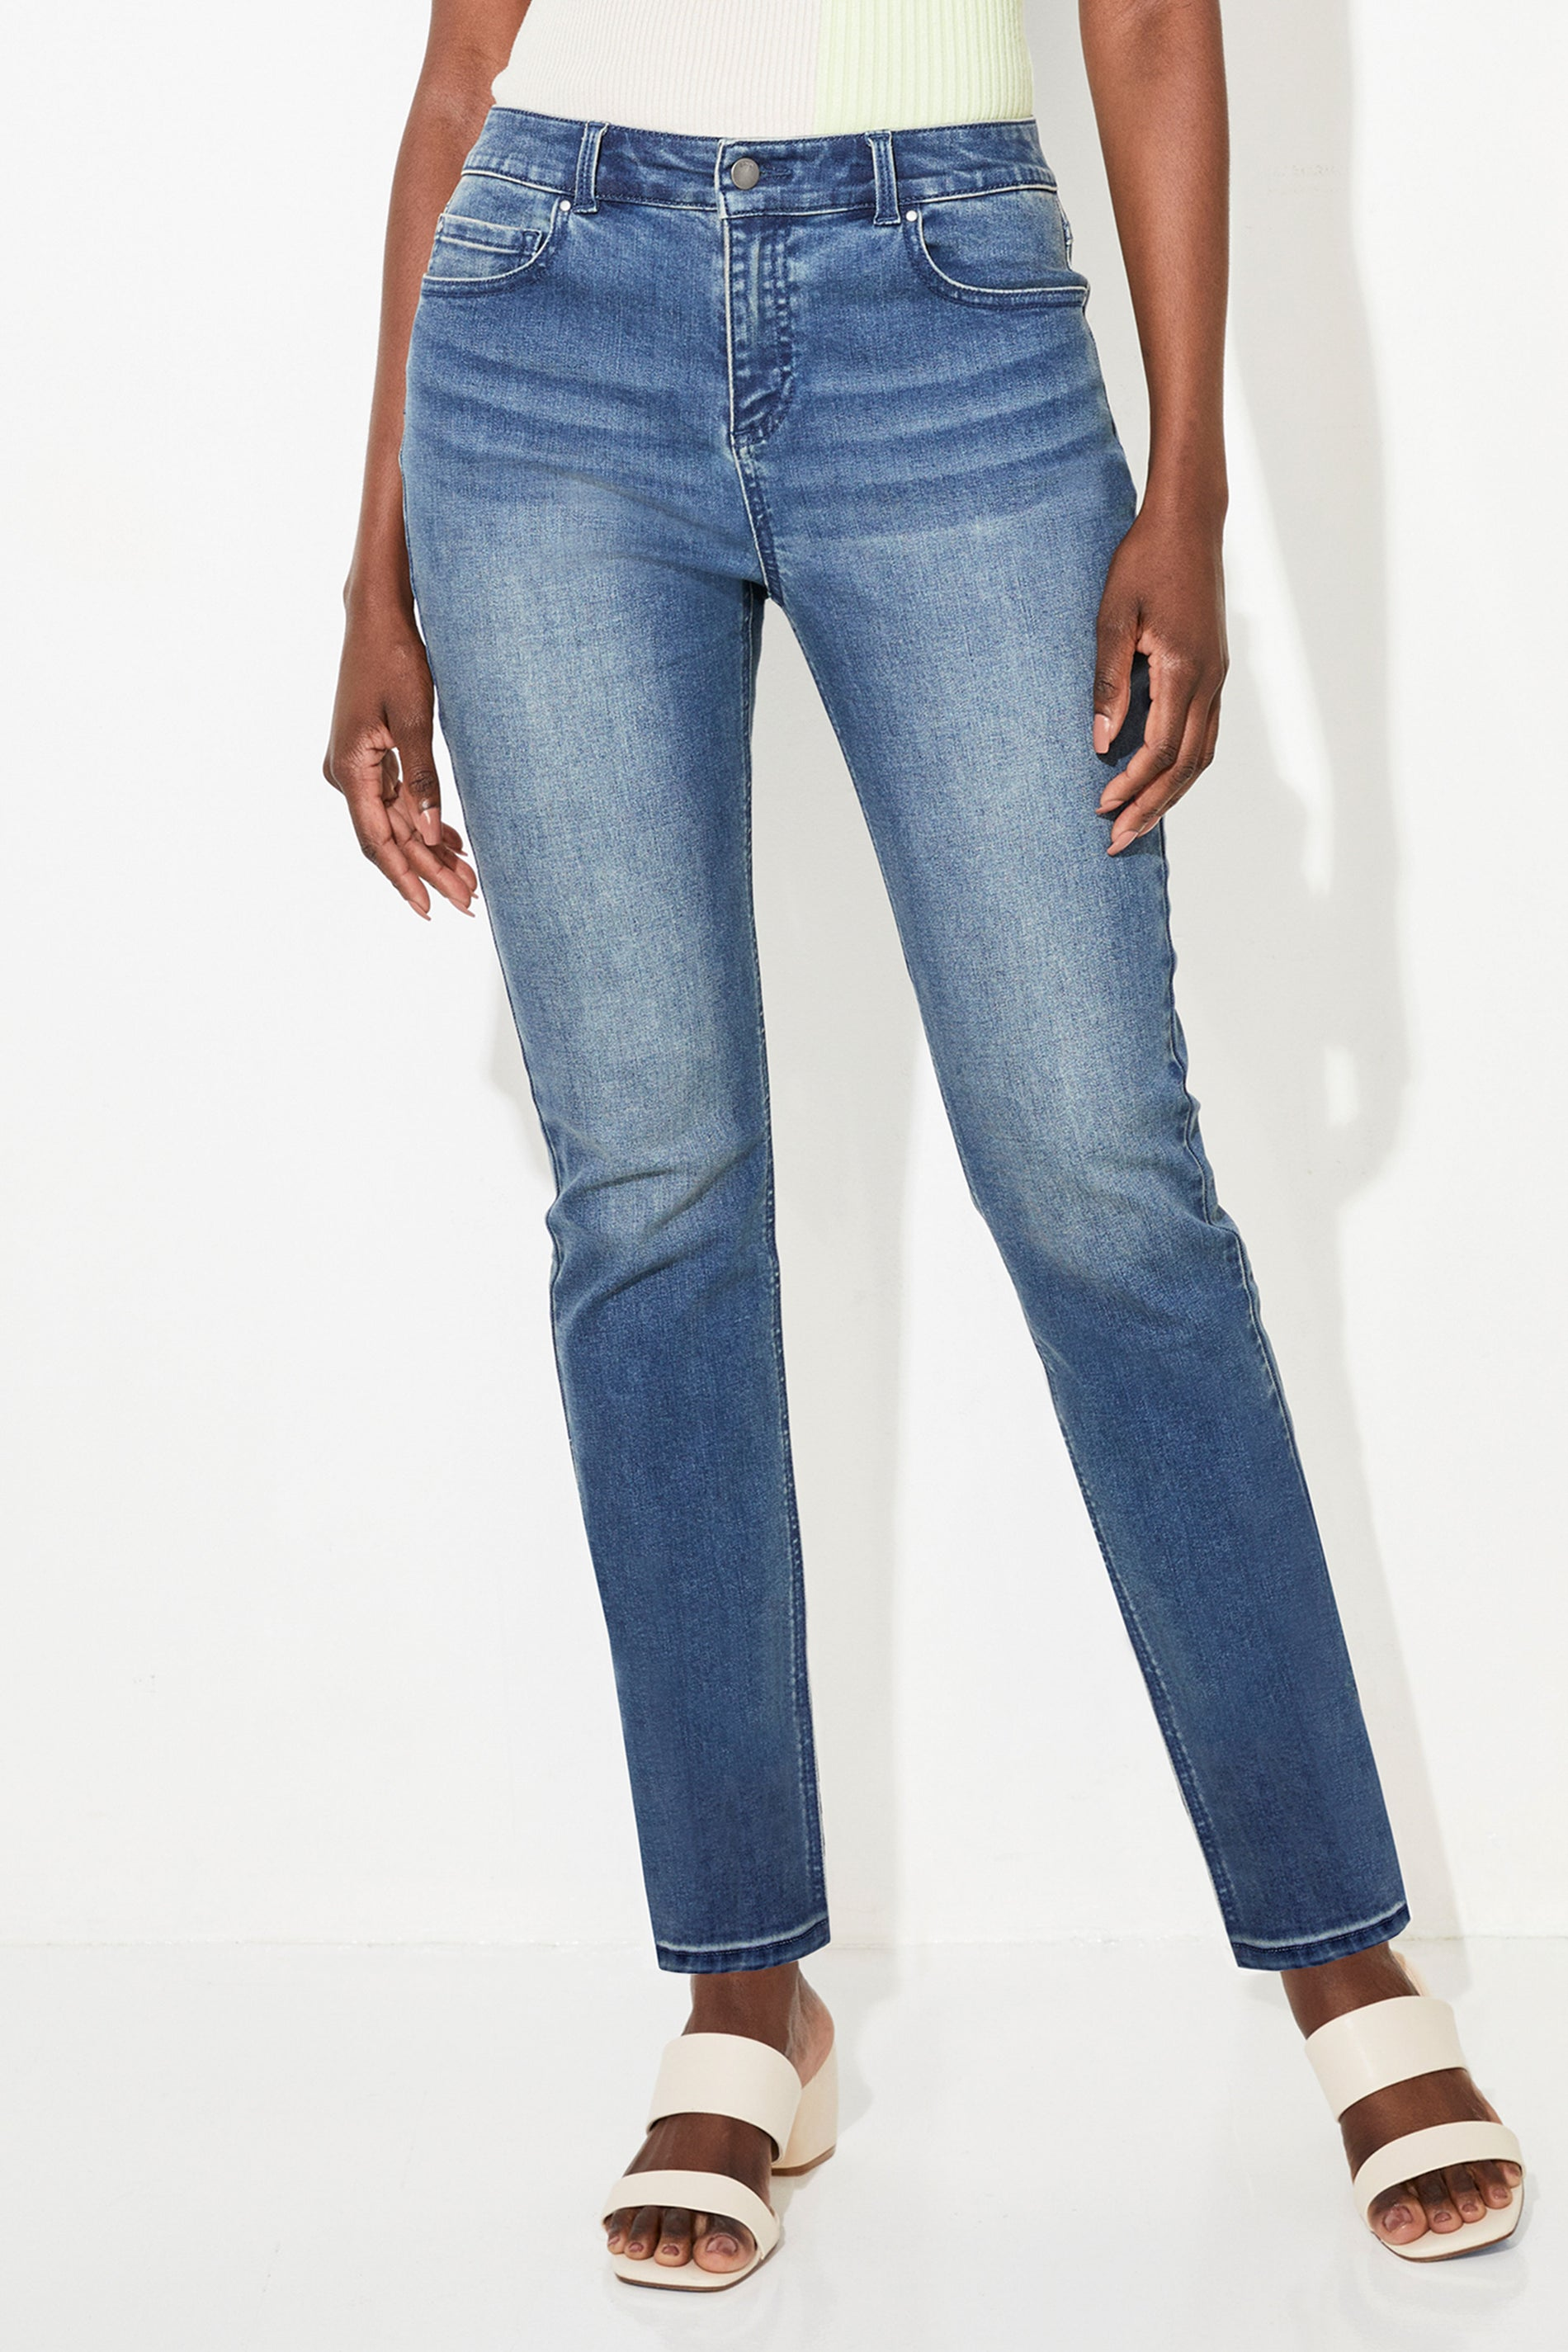 Melrose 5 Pocket Skinny Jean